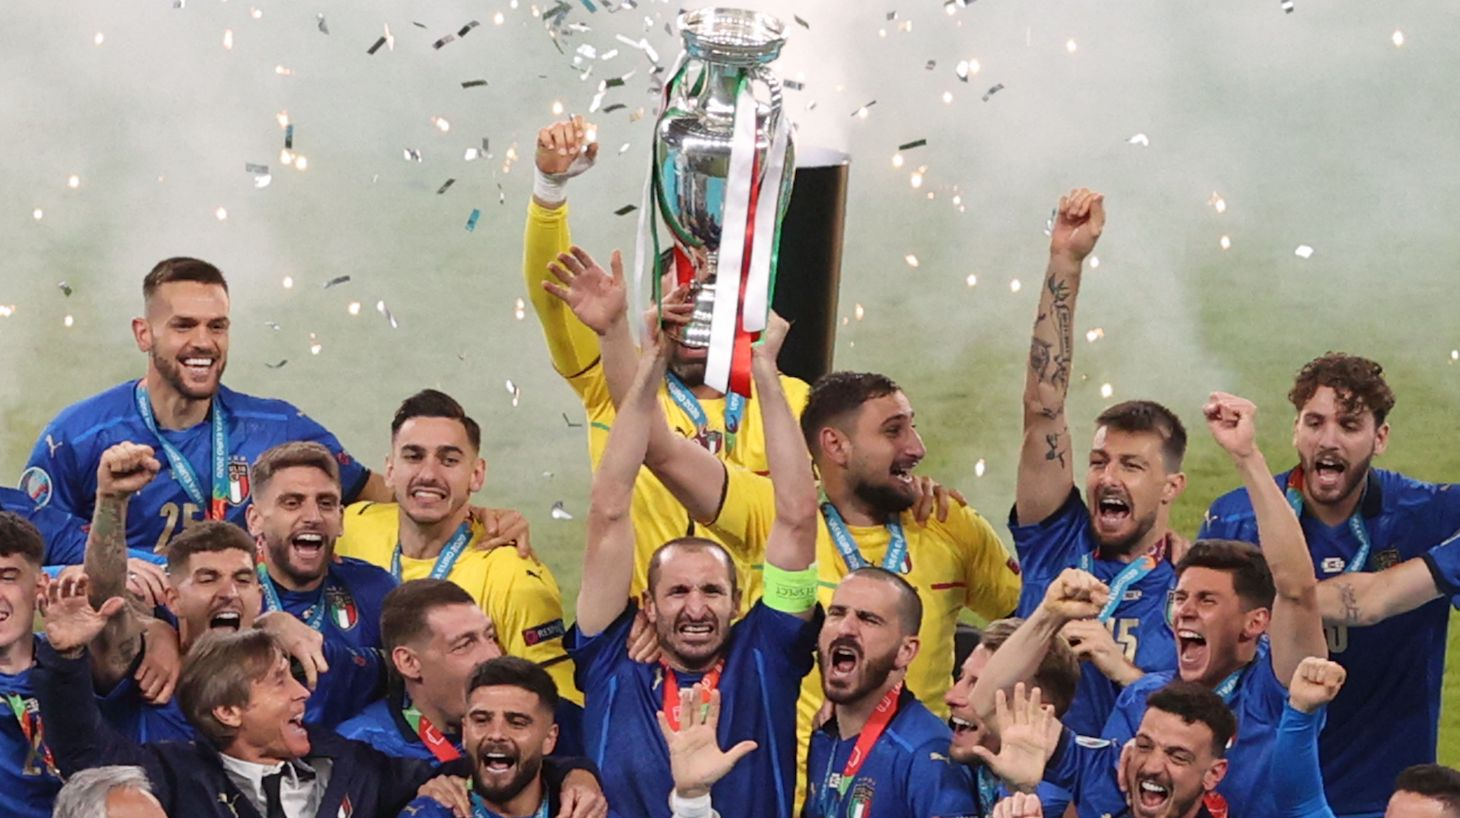 Italy's defender Giorgio Chiellini raises the European Championship trophy during the presentation after Italy won the UEFA EURO 2020 final football match between Italy and England at the Wembley Stadium in London on July 11, 2021.